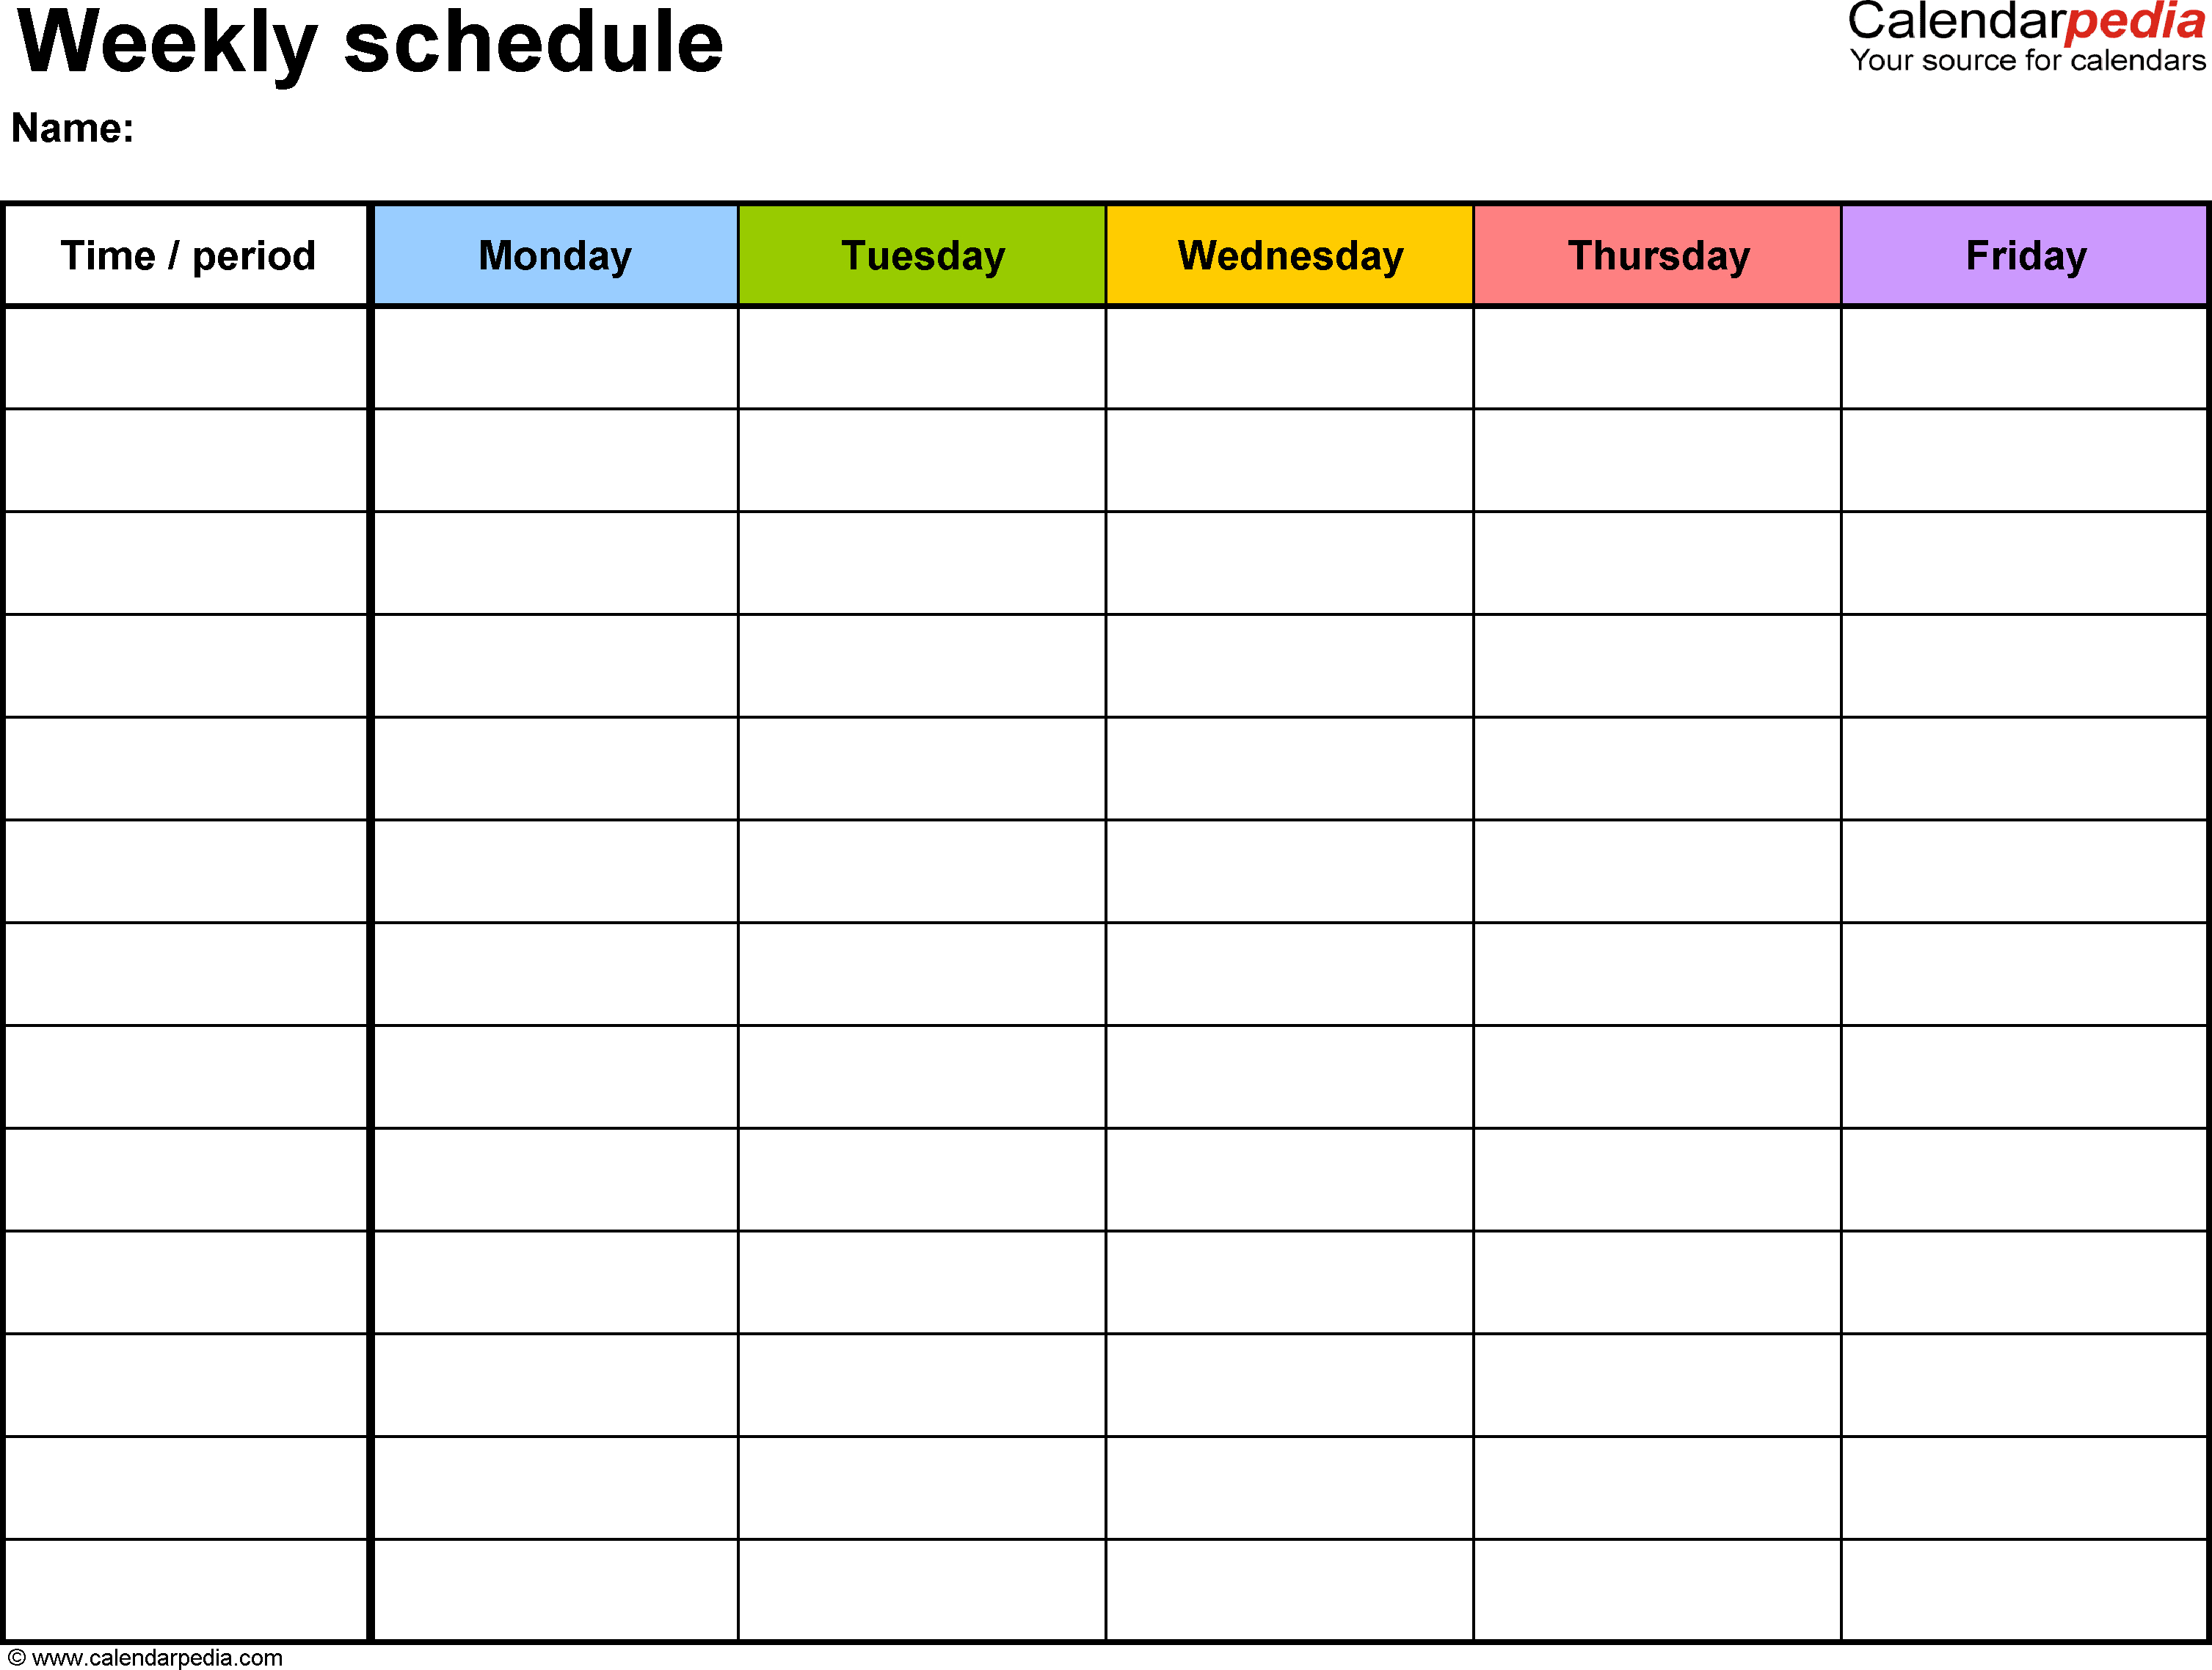 Free Weekly Schedule Templates For Excel - 18 Templates With Monthly Work Schedule Template Free